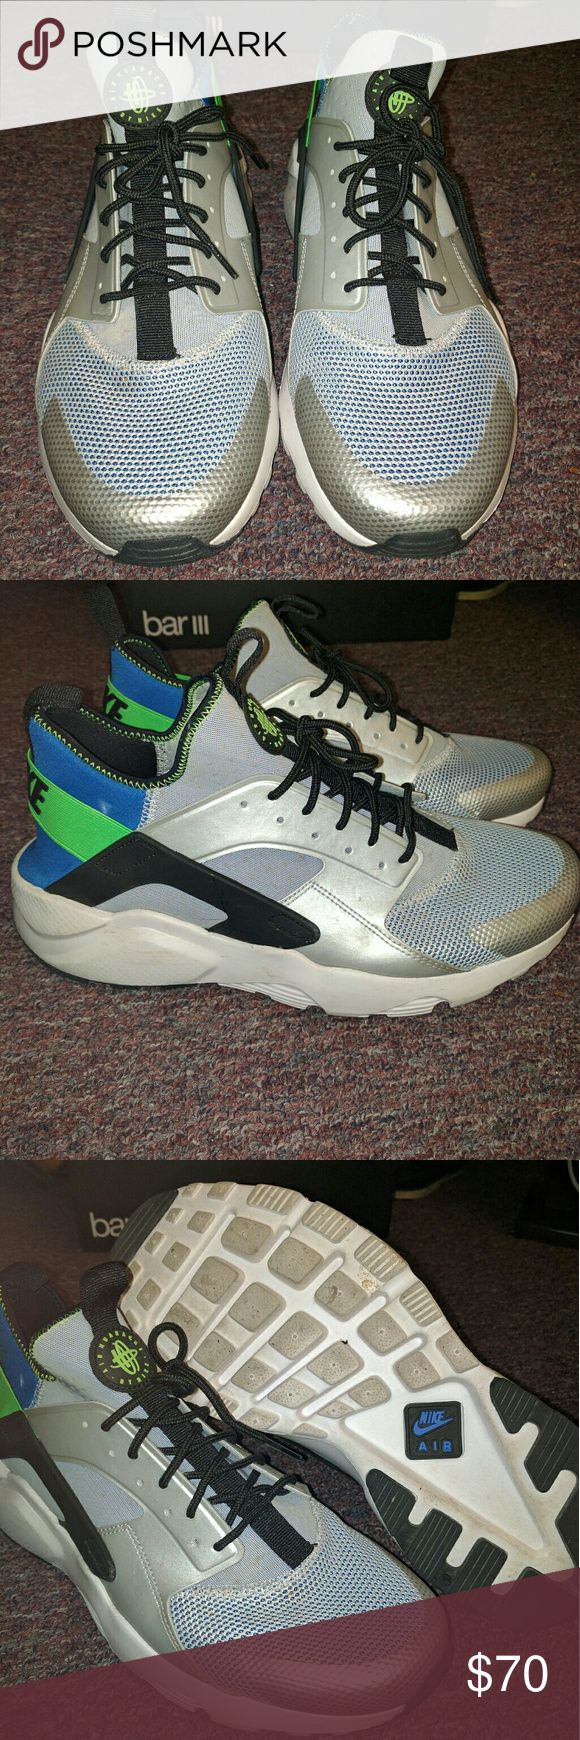 Air Huarache Air Huarache grey, white, with blue and green back  Make an offer Nike Shoes Sneakers